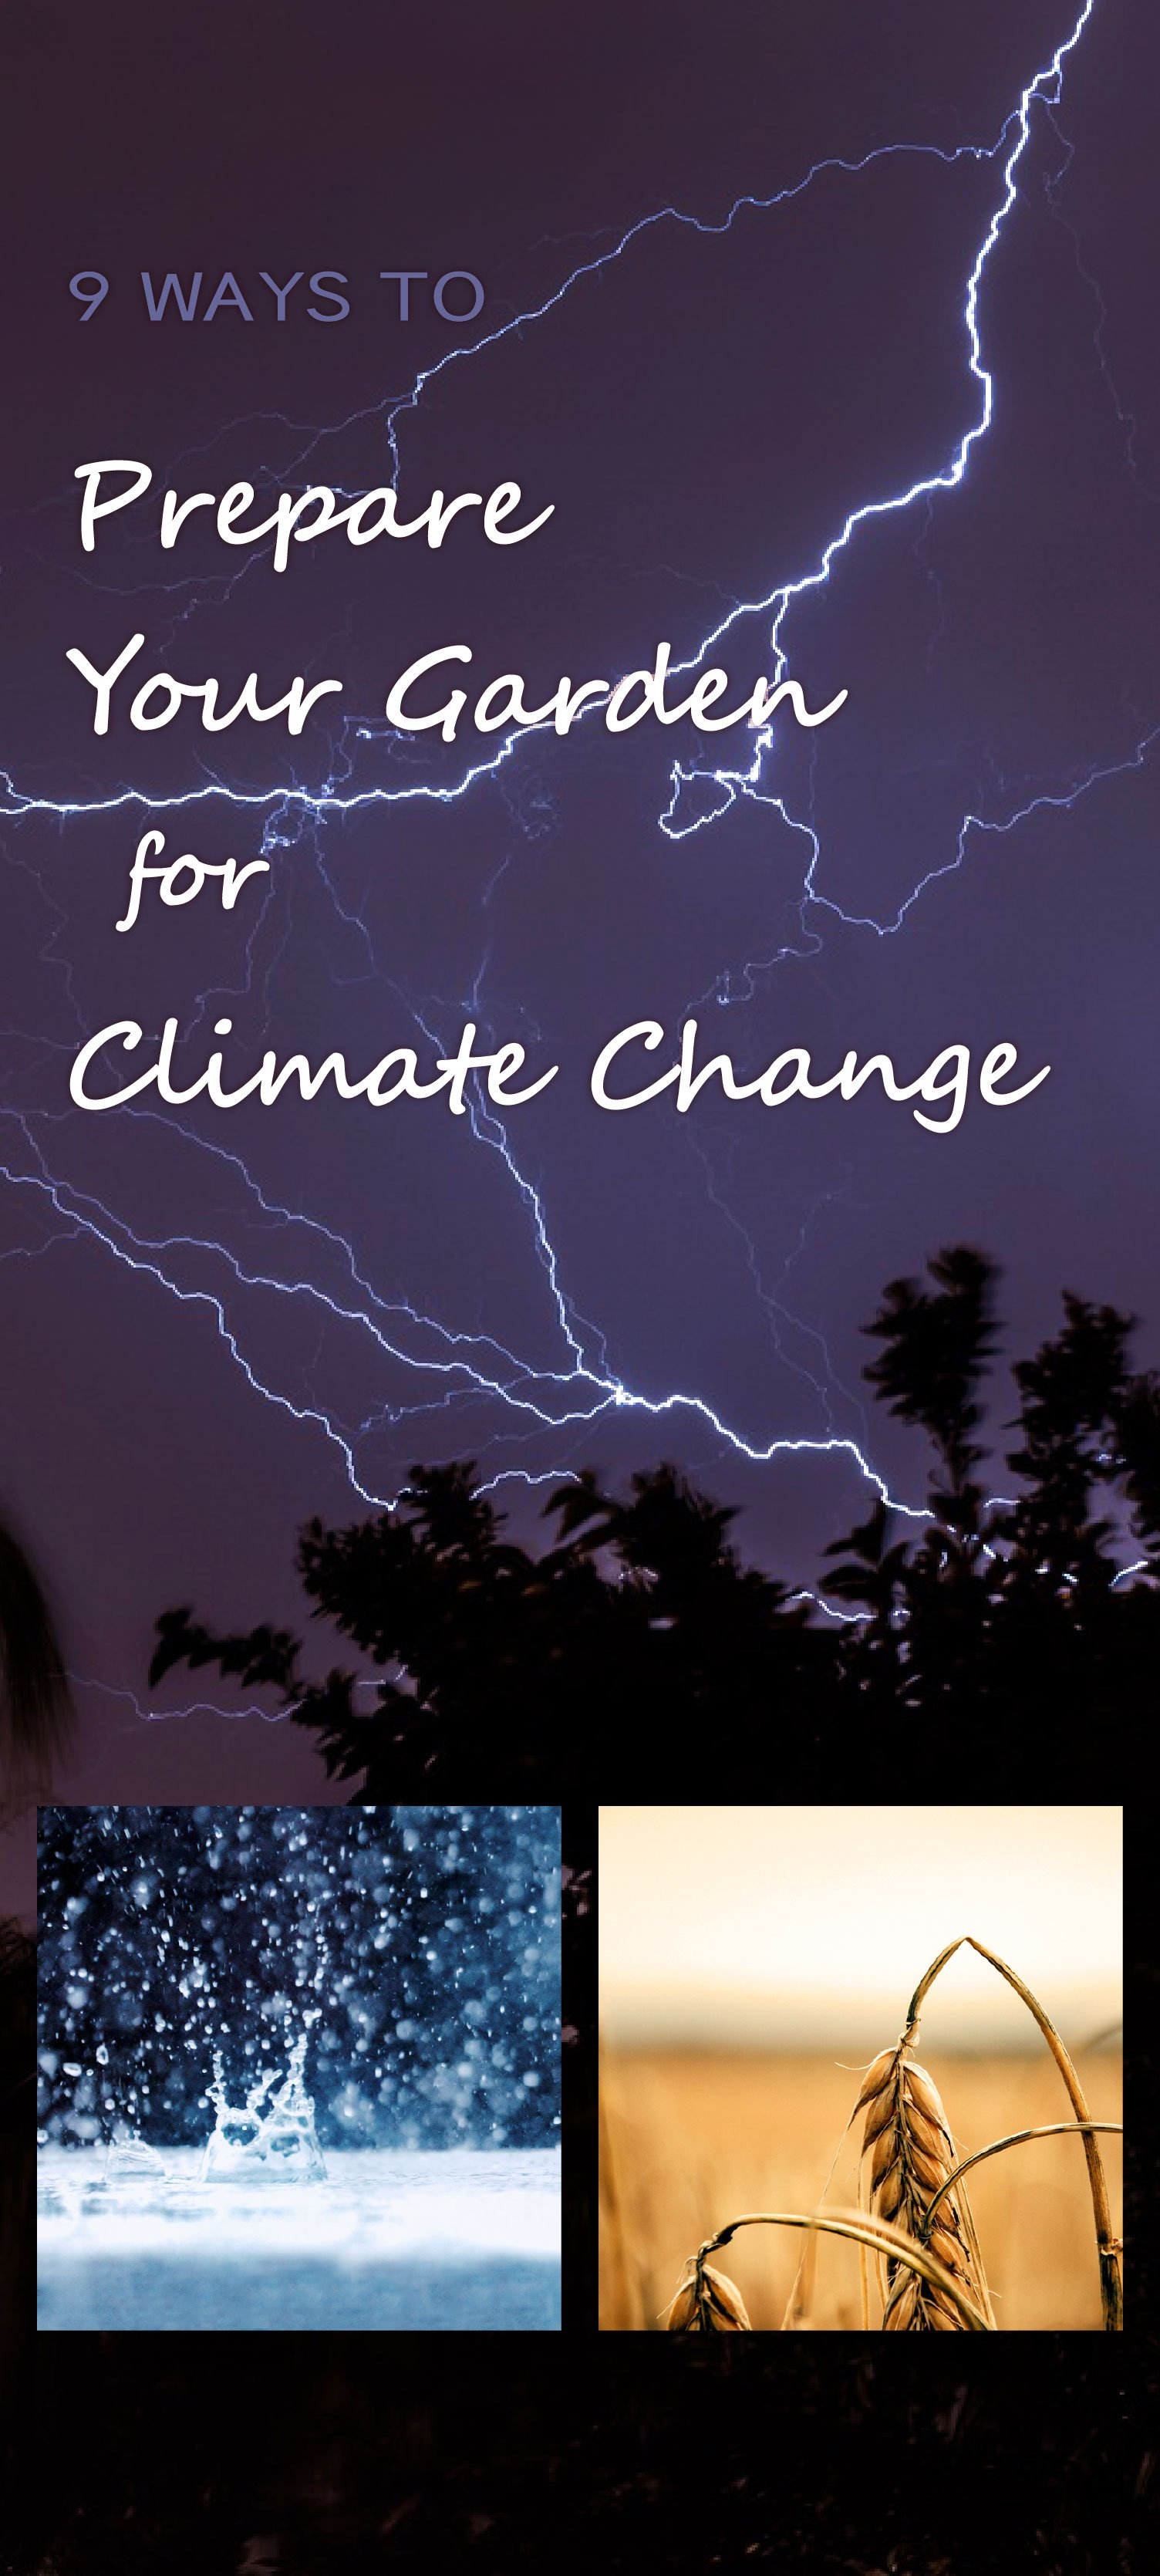 Garden for climate change